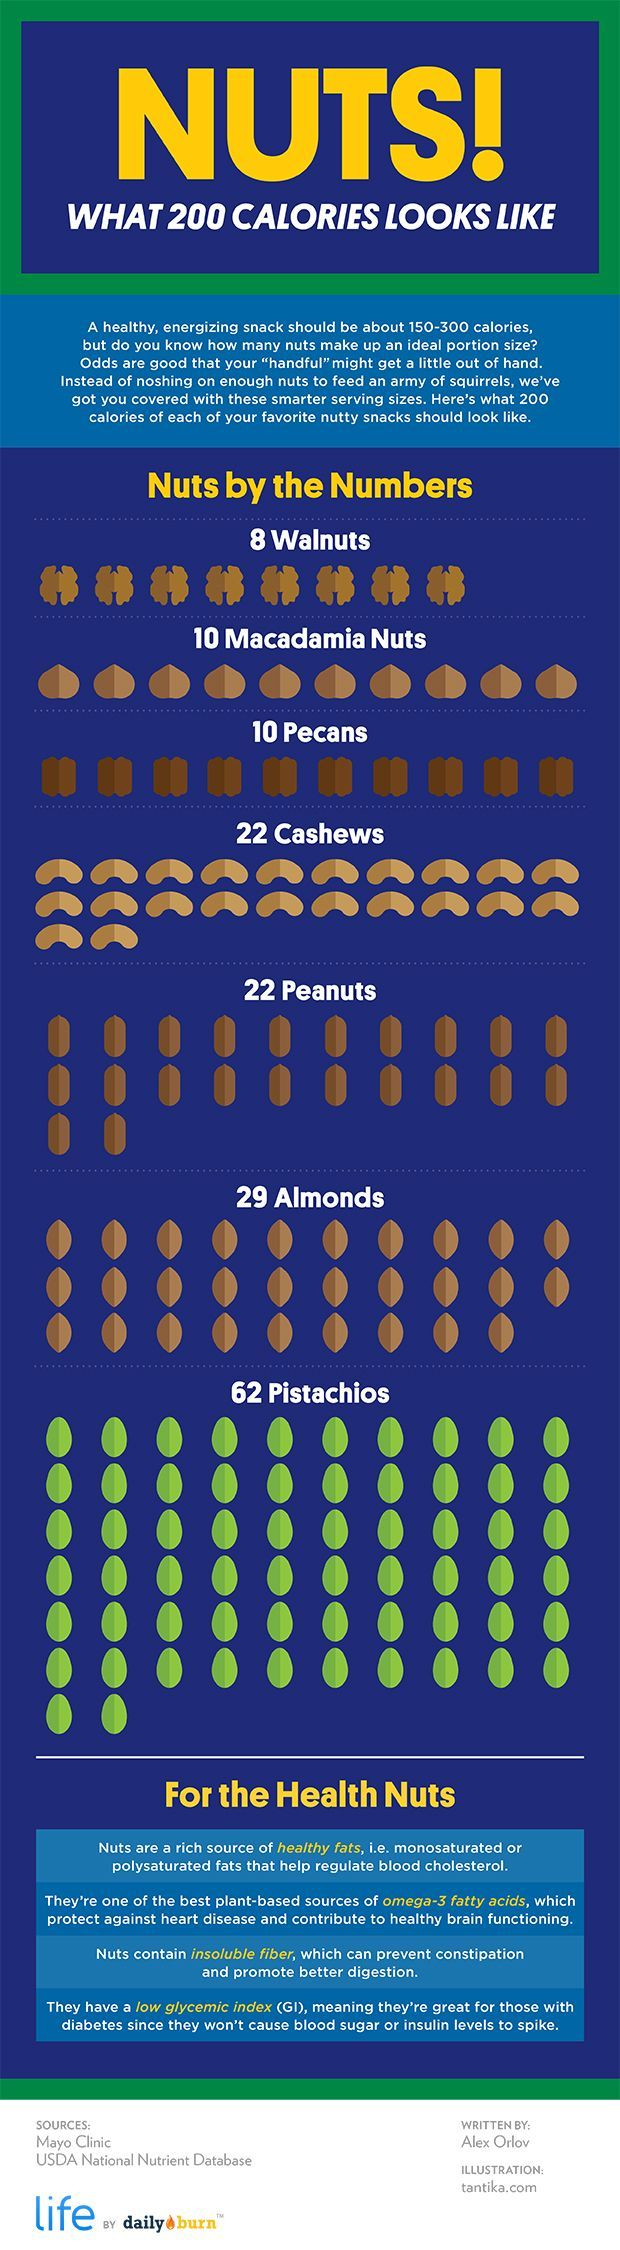 Nuts about nuts? Before going overboard, check out this infographic, which shows the ideal 200-calorie serving size for peanuts, cashews, almonds and more.